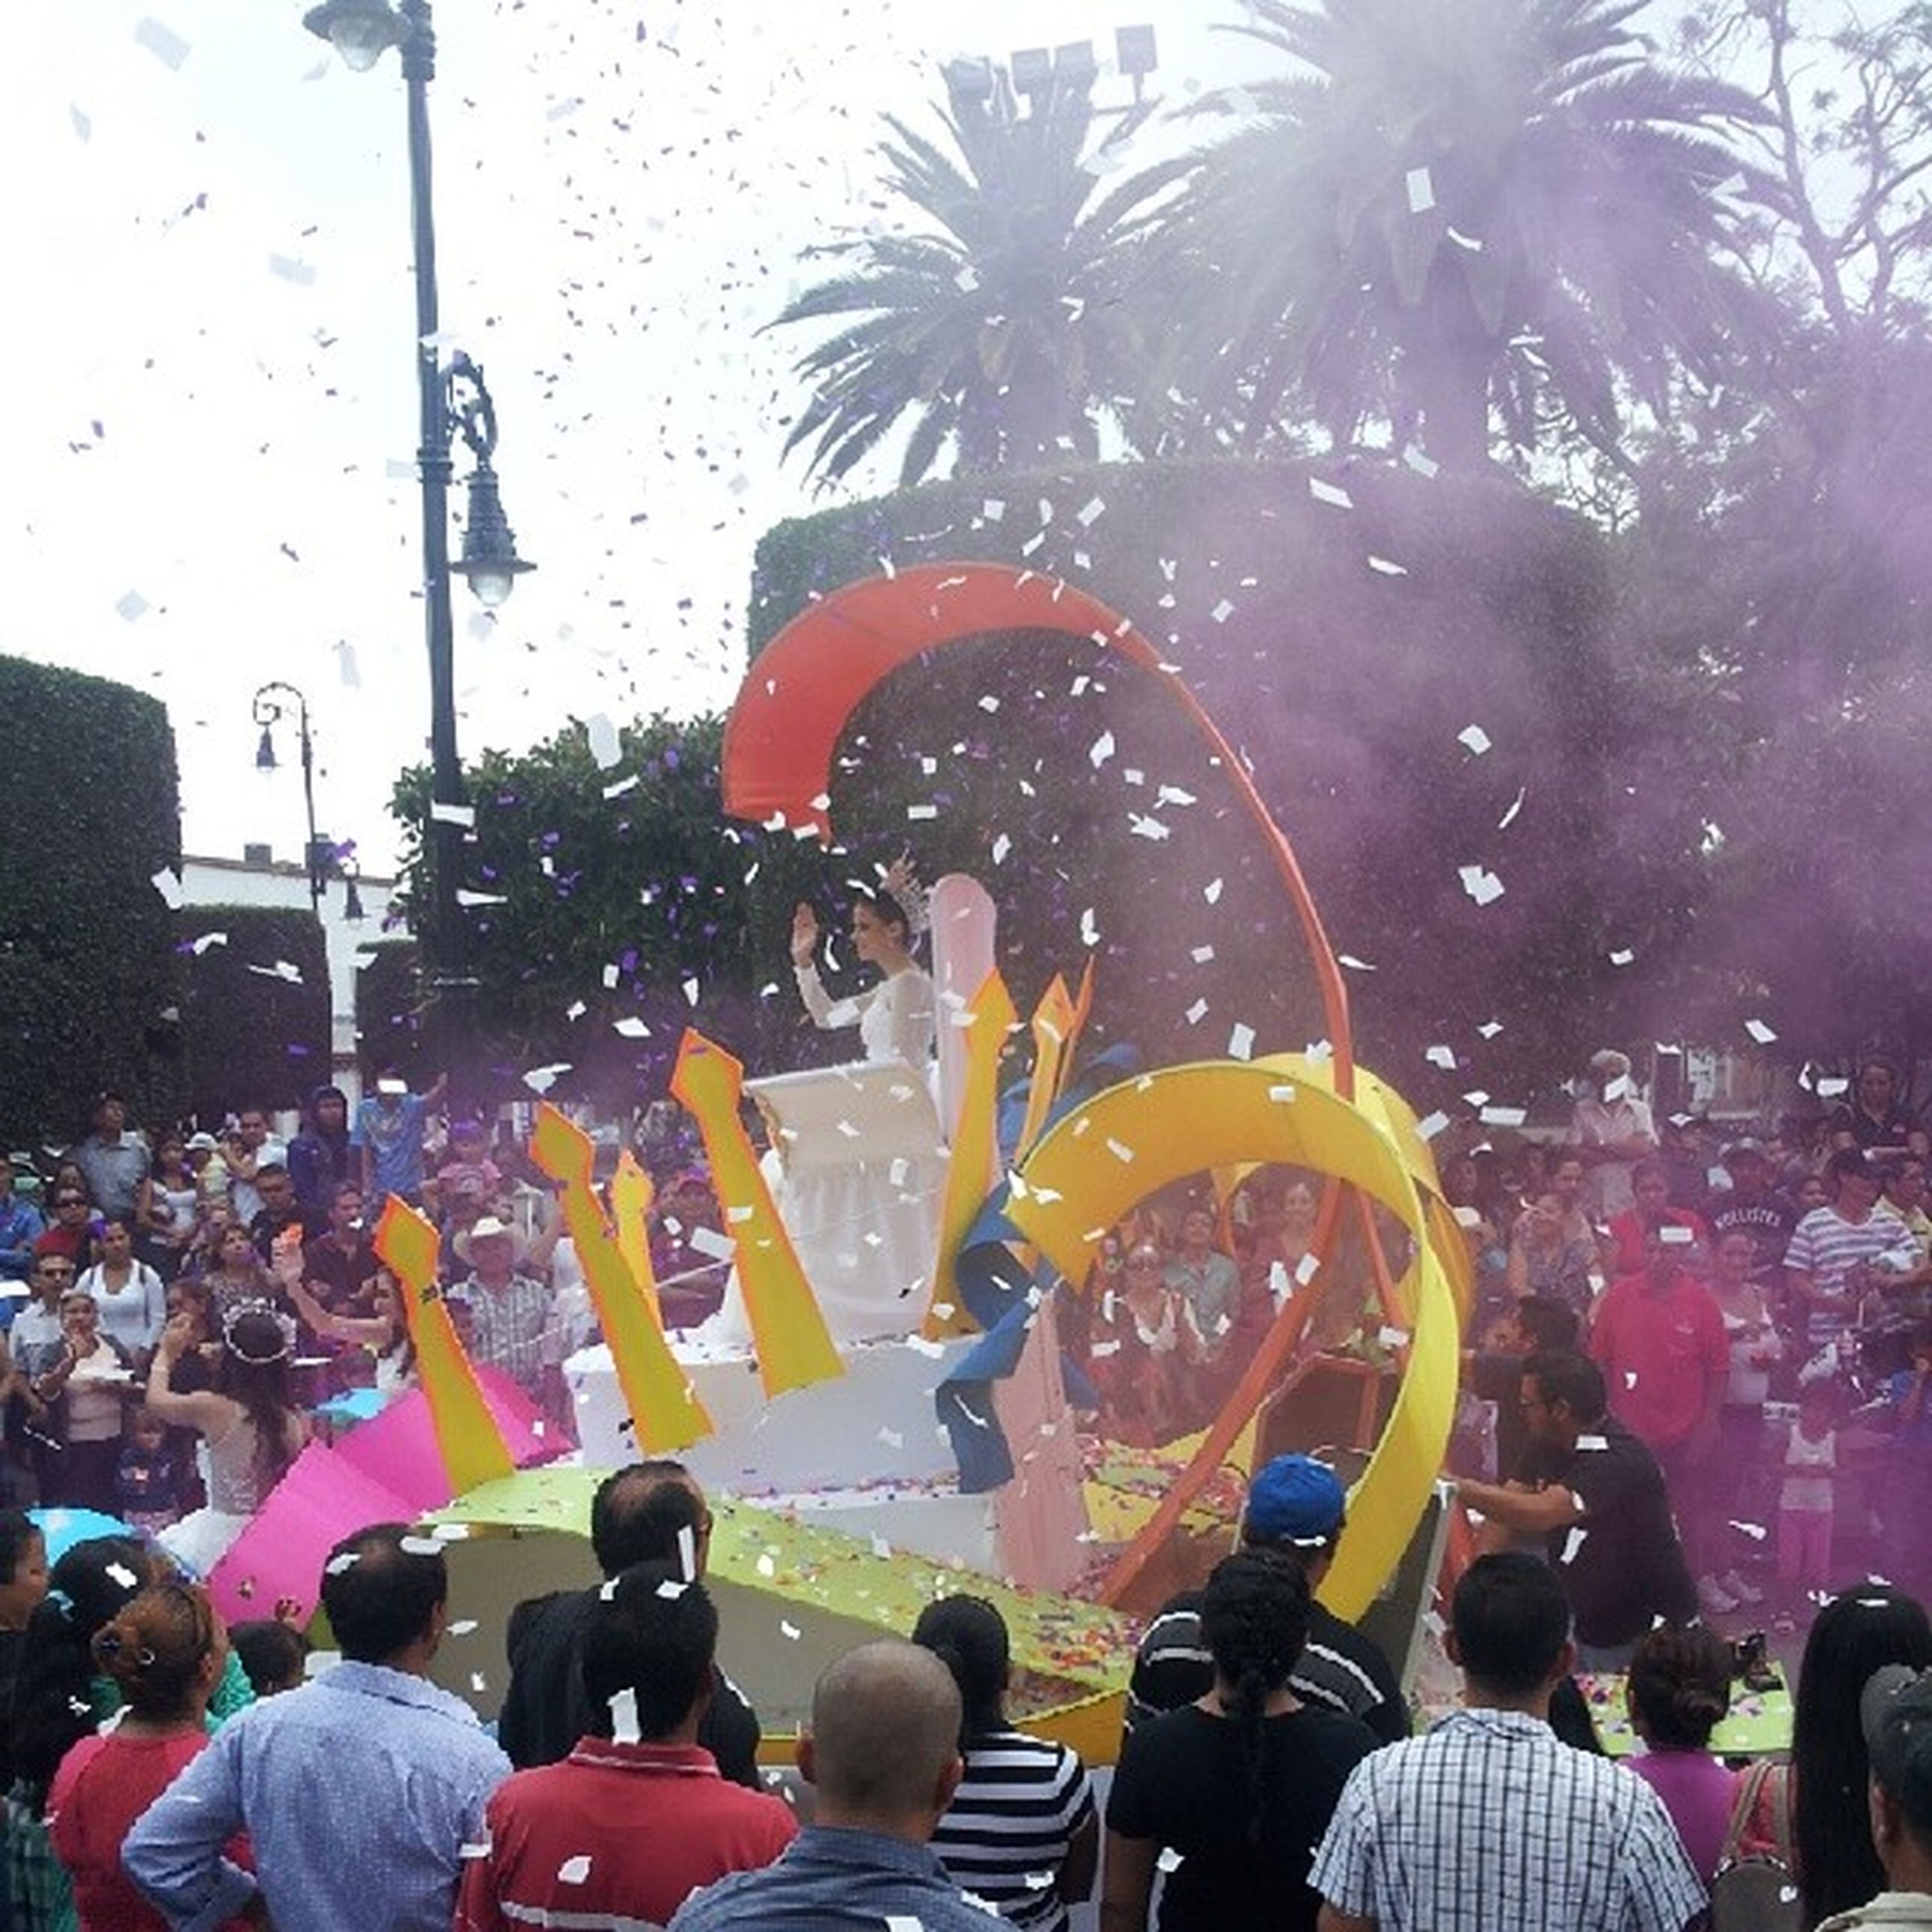 lifestyles, large group of people, crowd, leisure activity, men, togetherness, enjoyment, person, fun, arts culture and entertainment, street, performance, event, celebration, illuminated, spectator, standing, tree